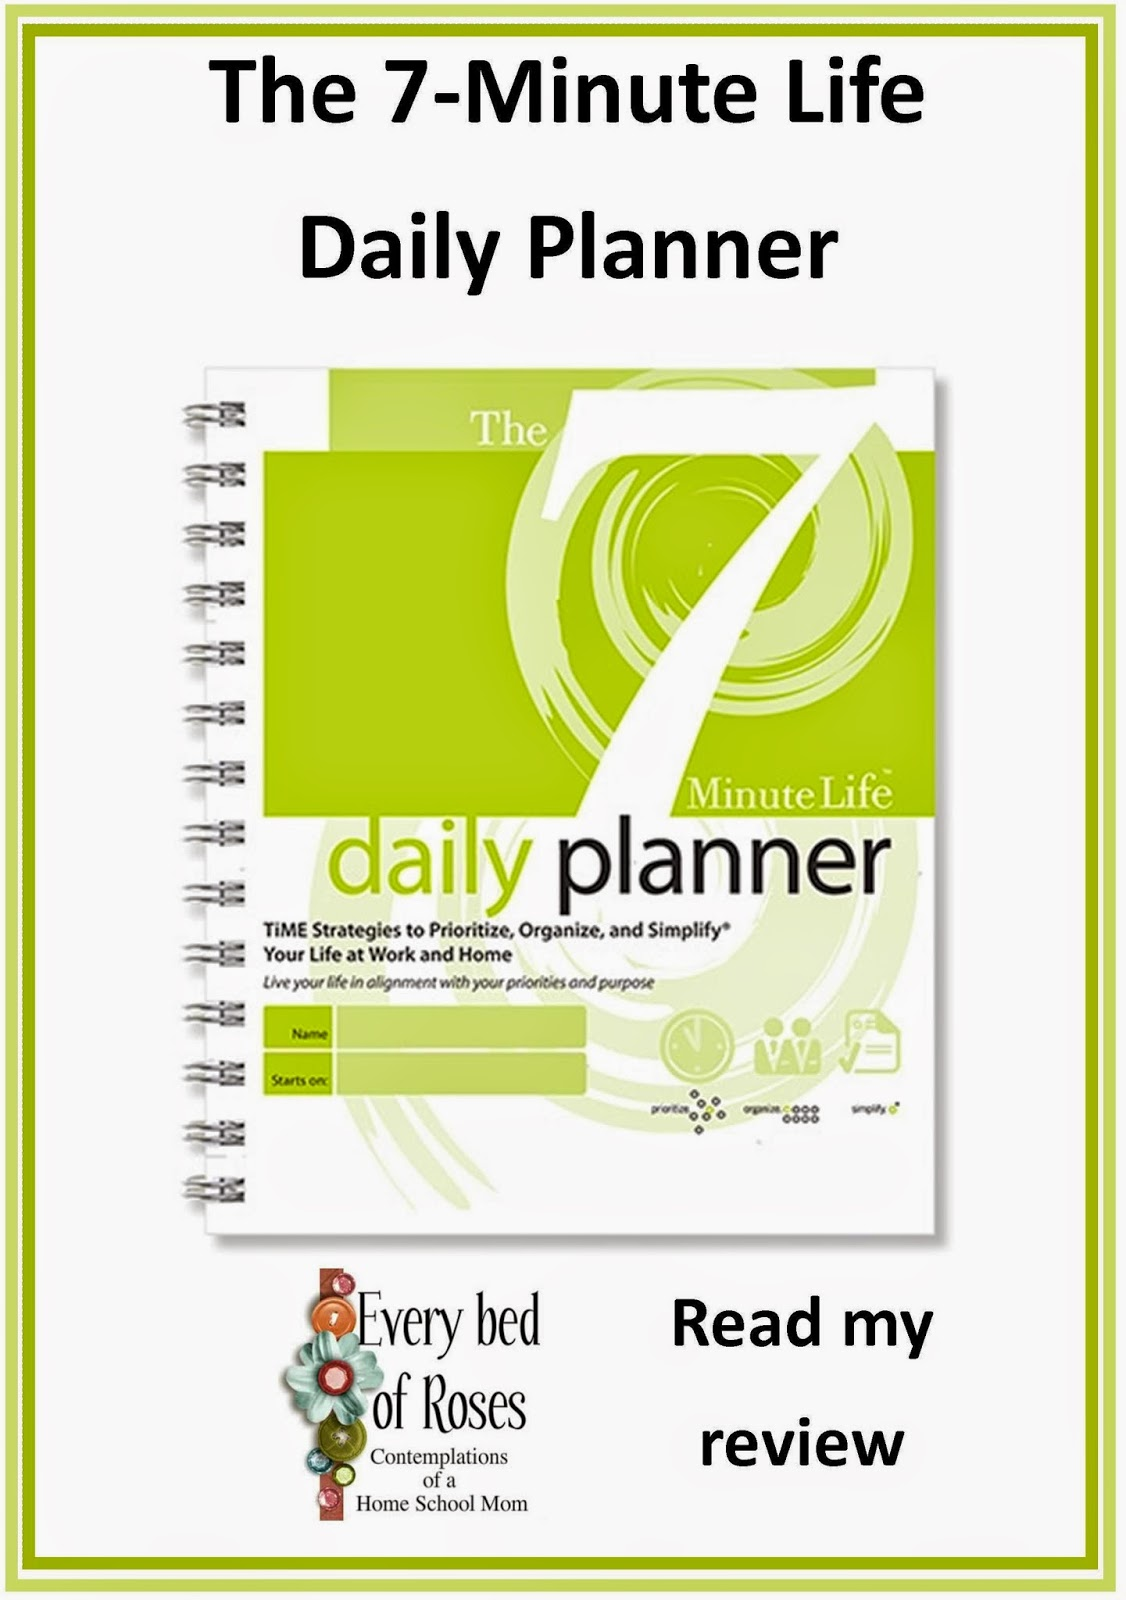 Every Bed of Roses: The 7 Minute Life Daily Planner {Review}